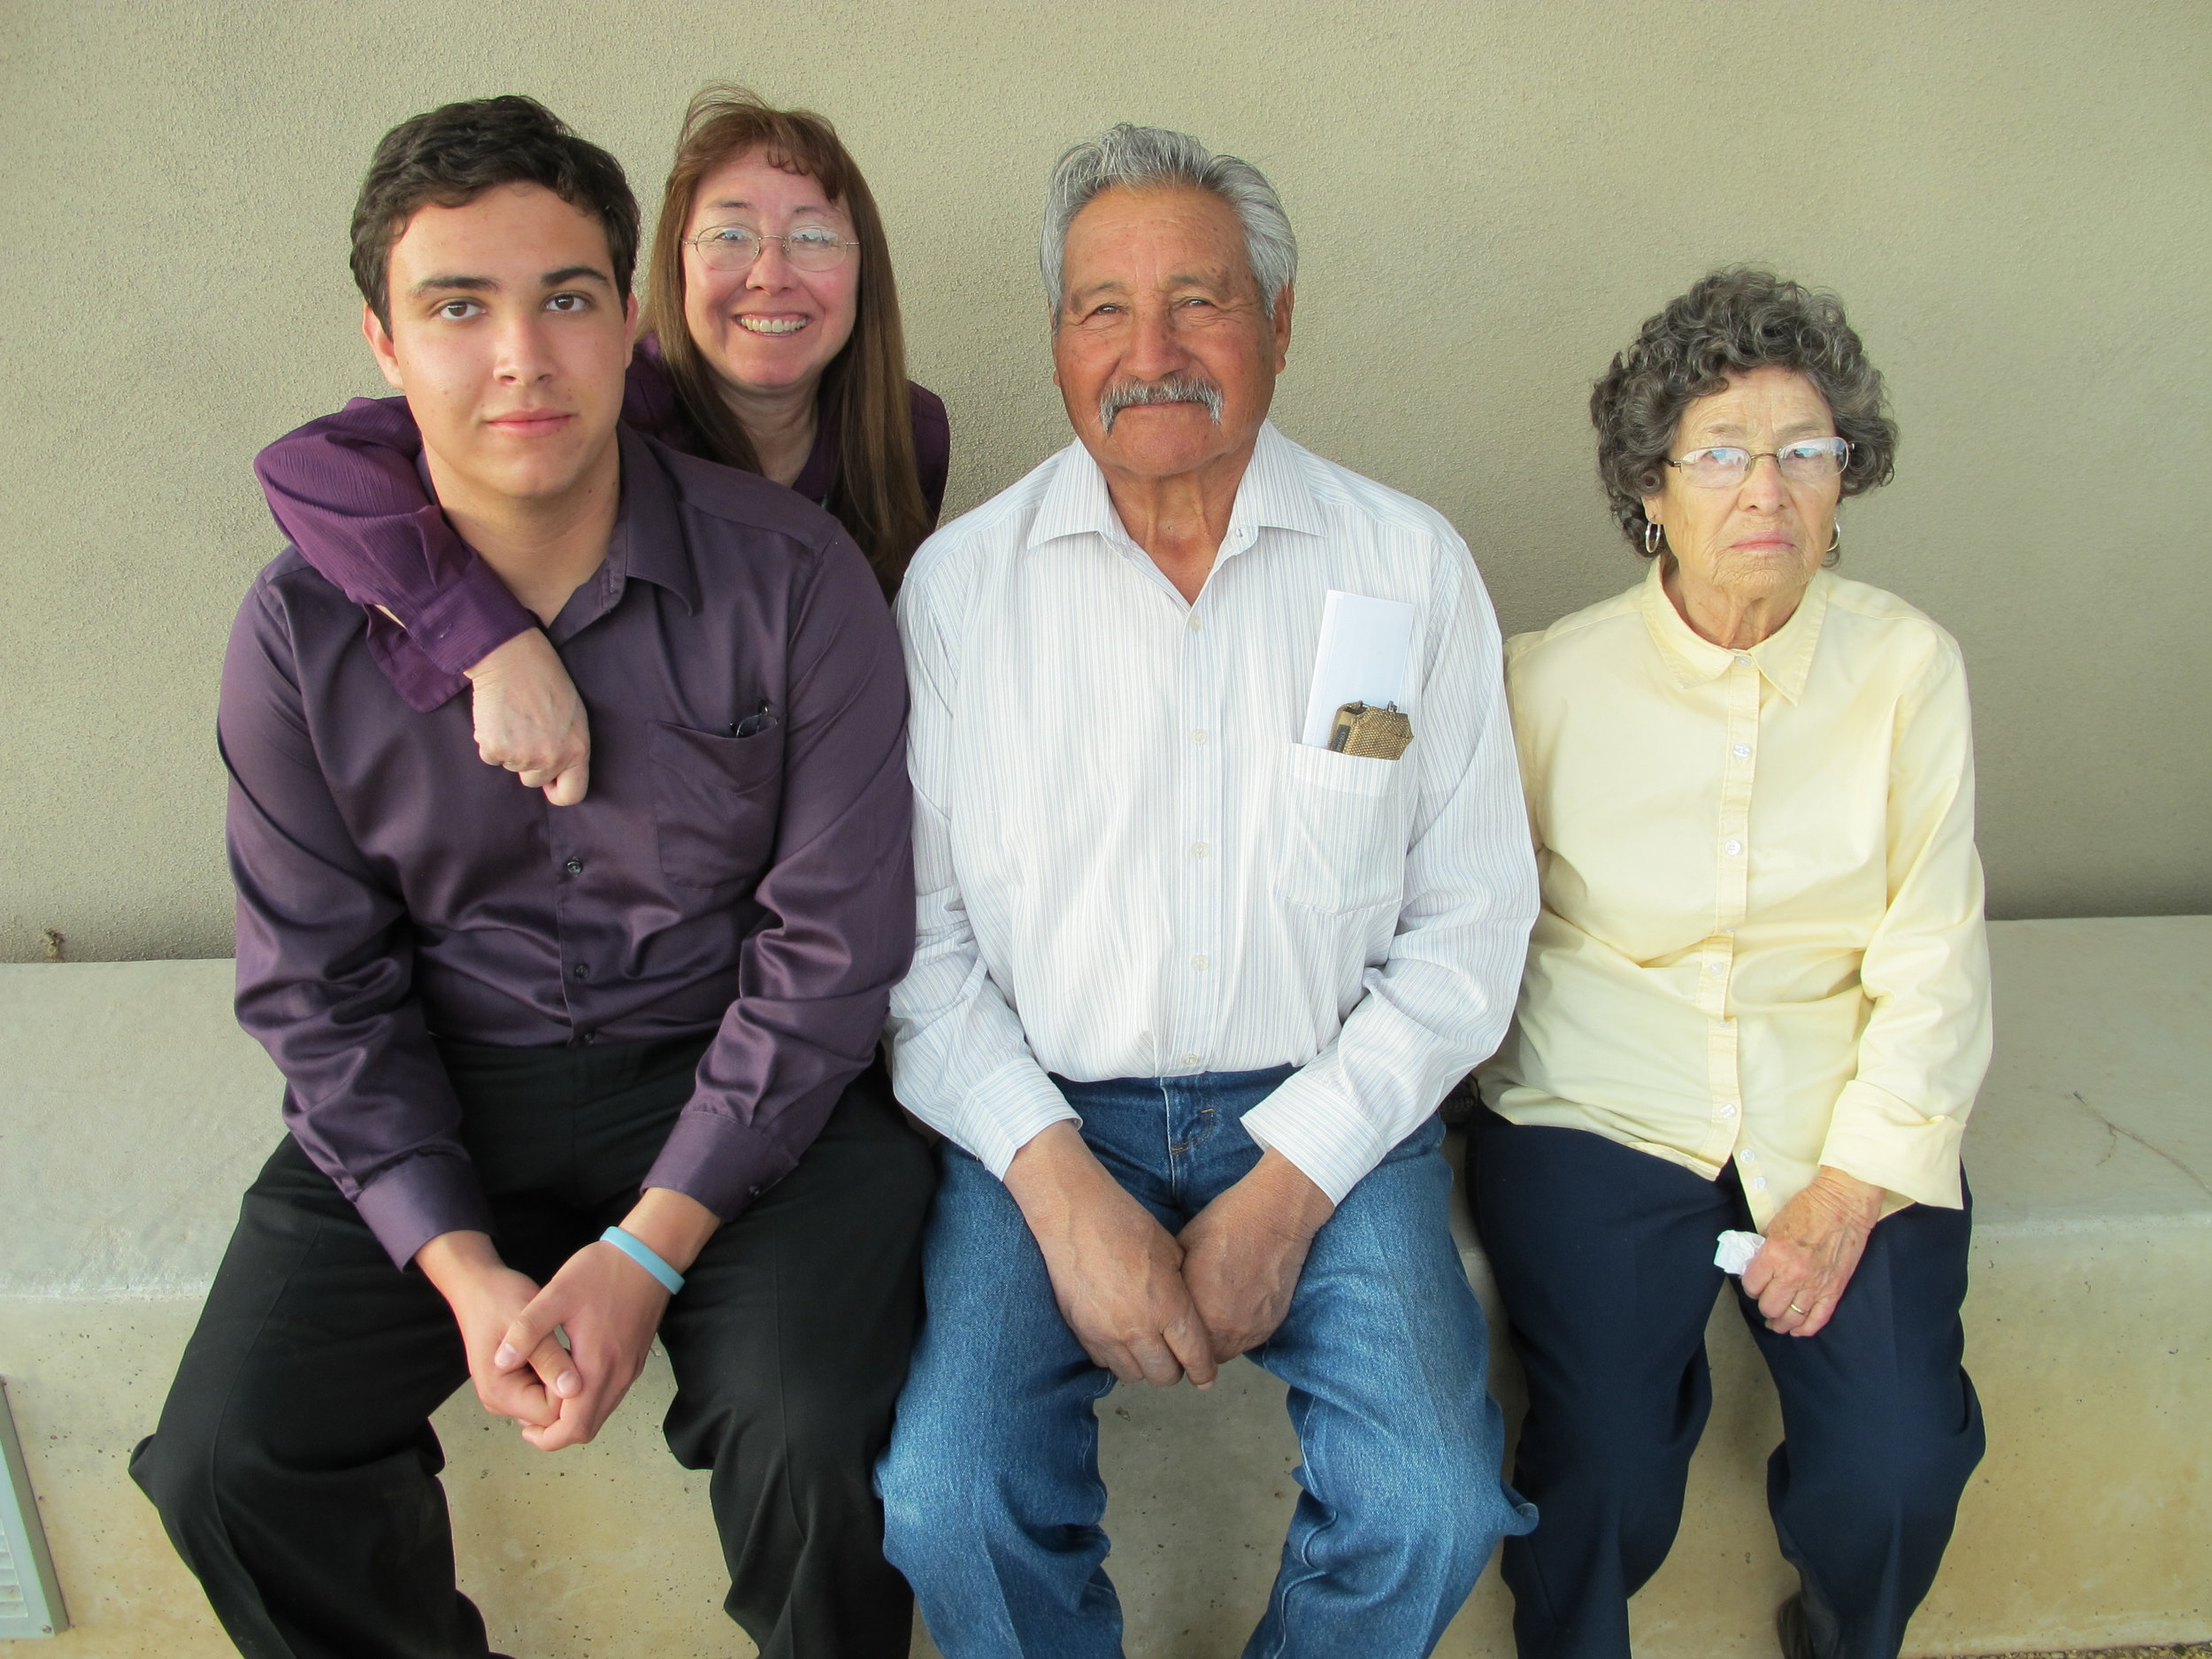 Photo of Matthew Lassey and family. Matthew was the overall best essayist in the 2013 Aldo Leopold Writing Contest